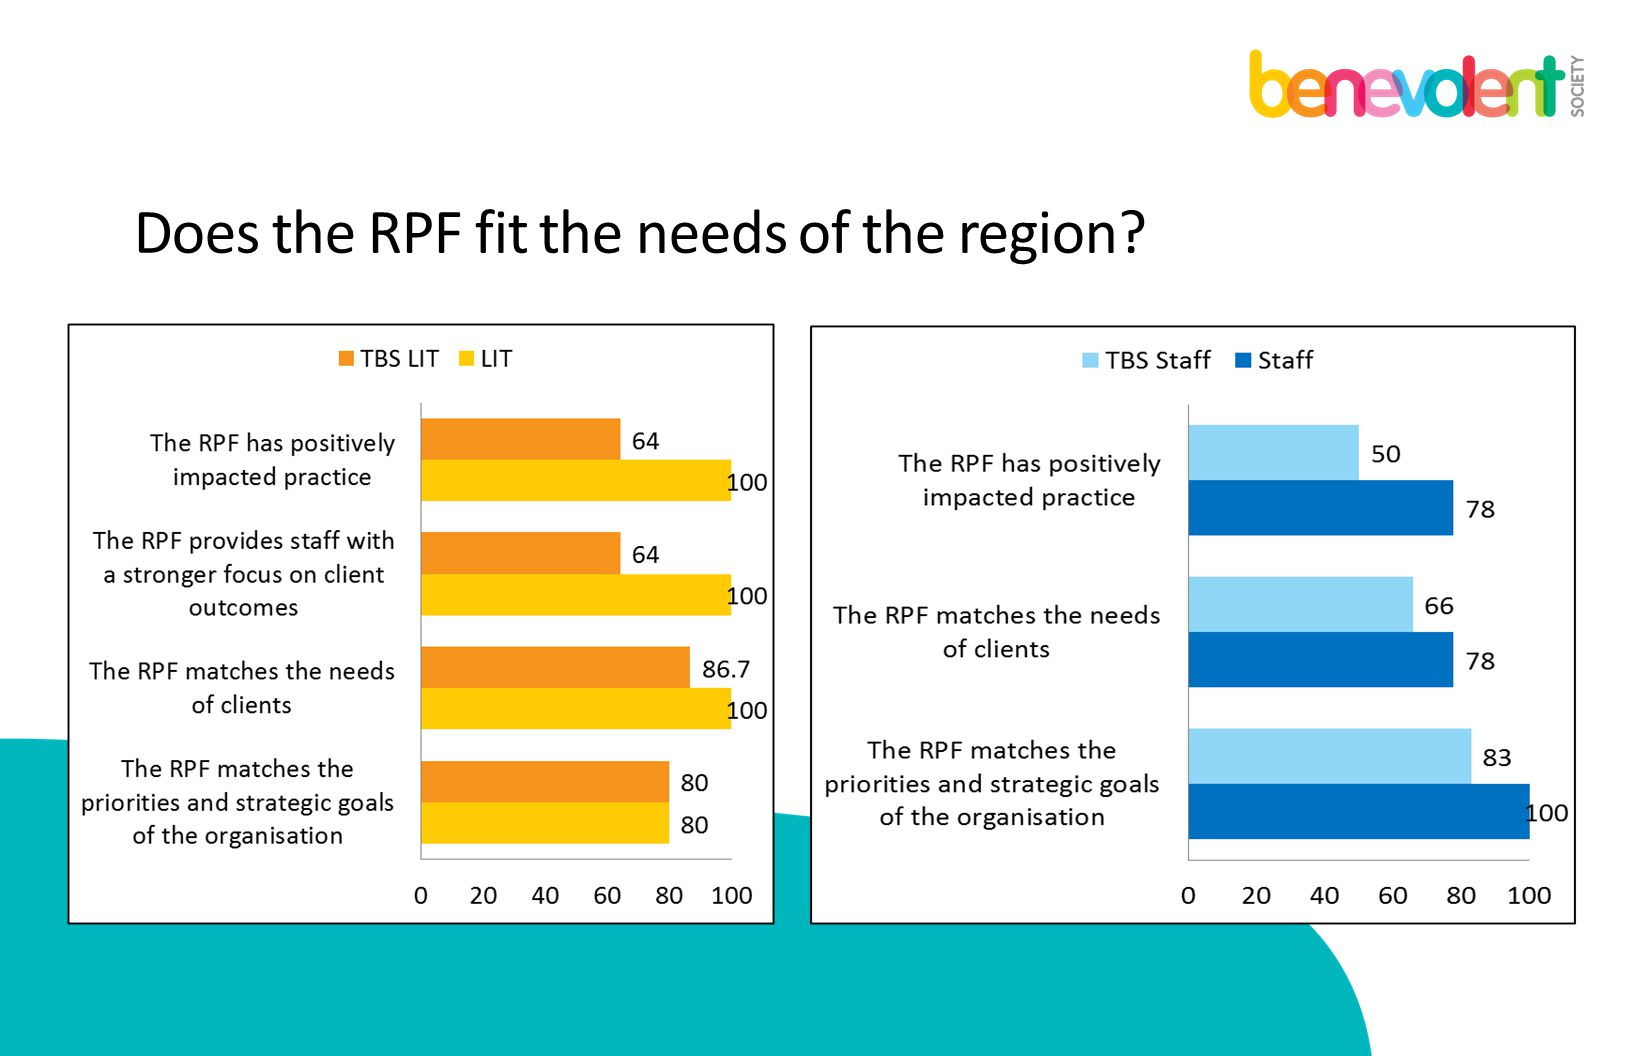 Does the RPF fit the needs of the region?